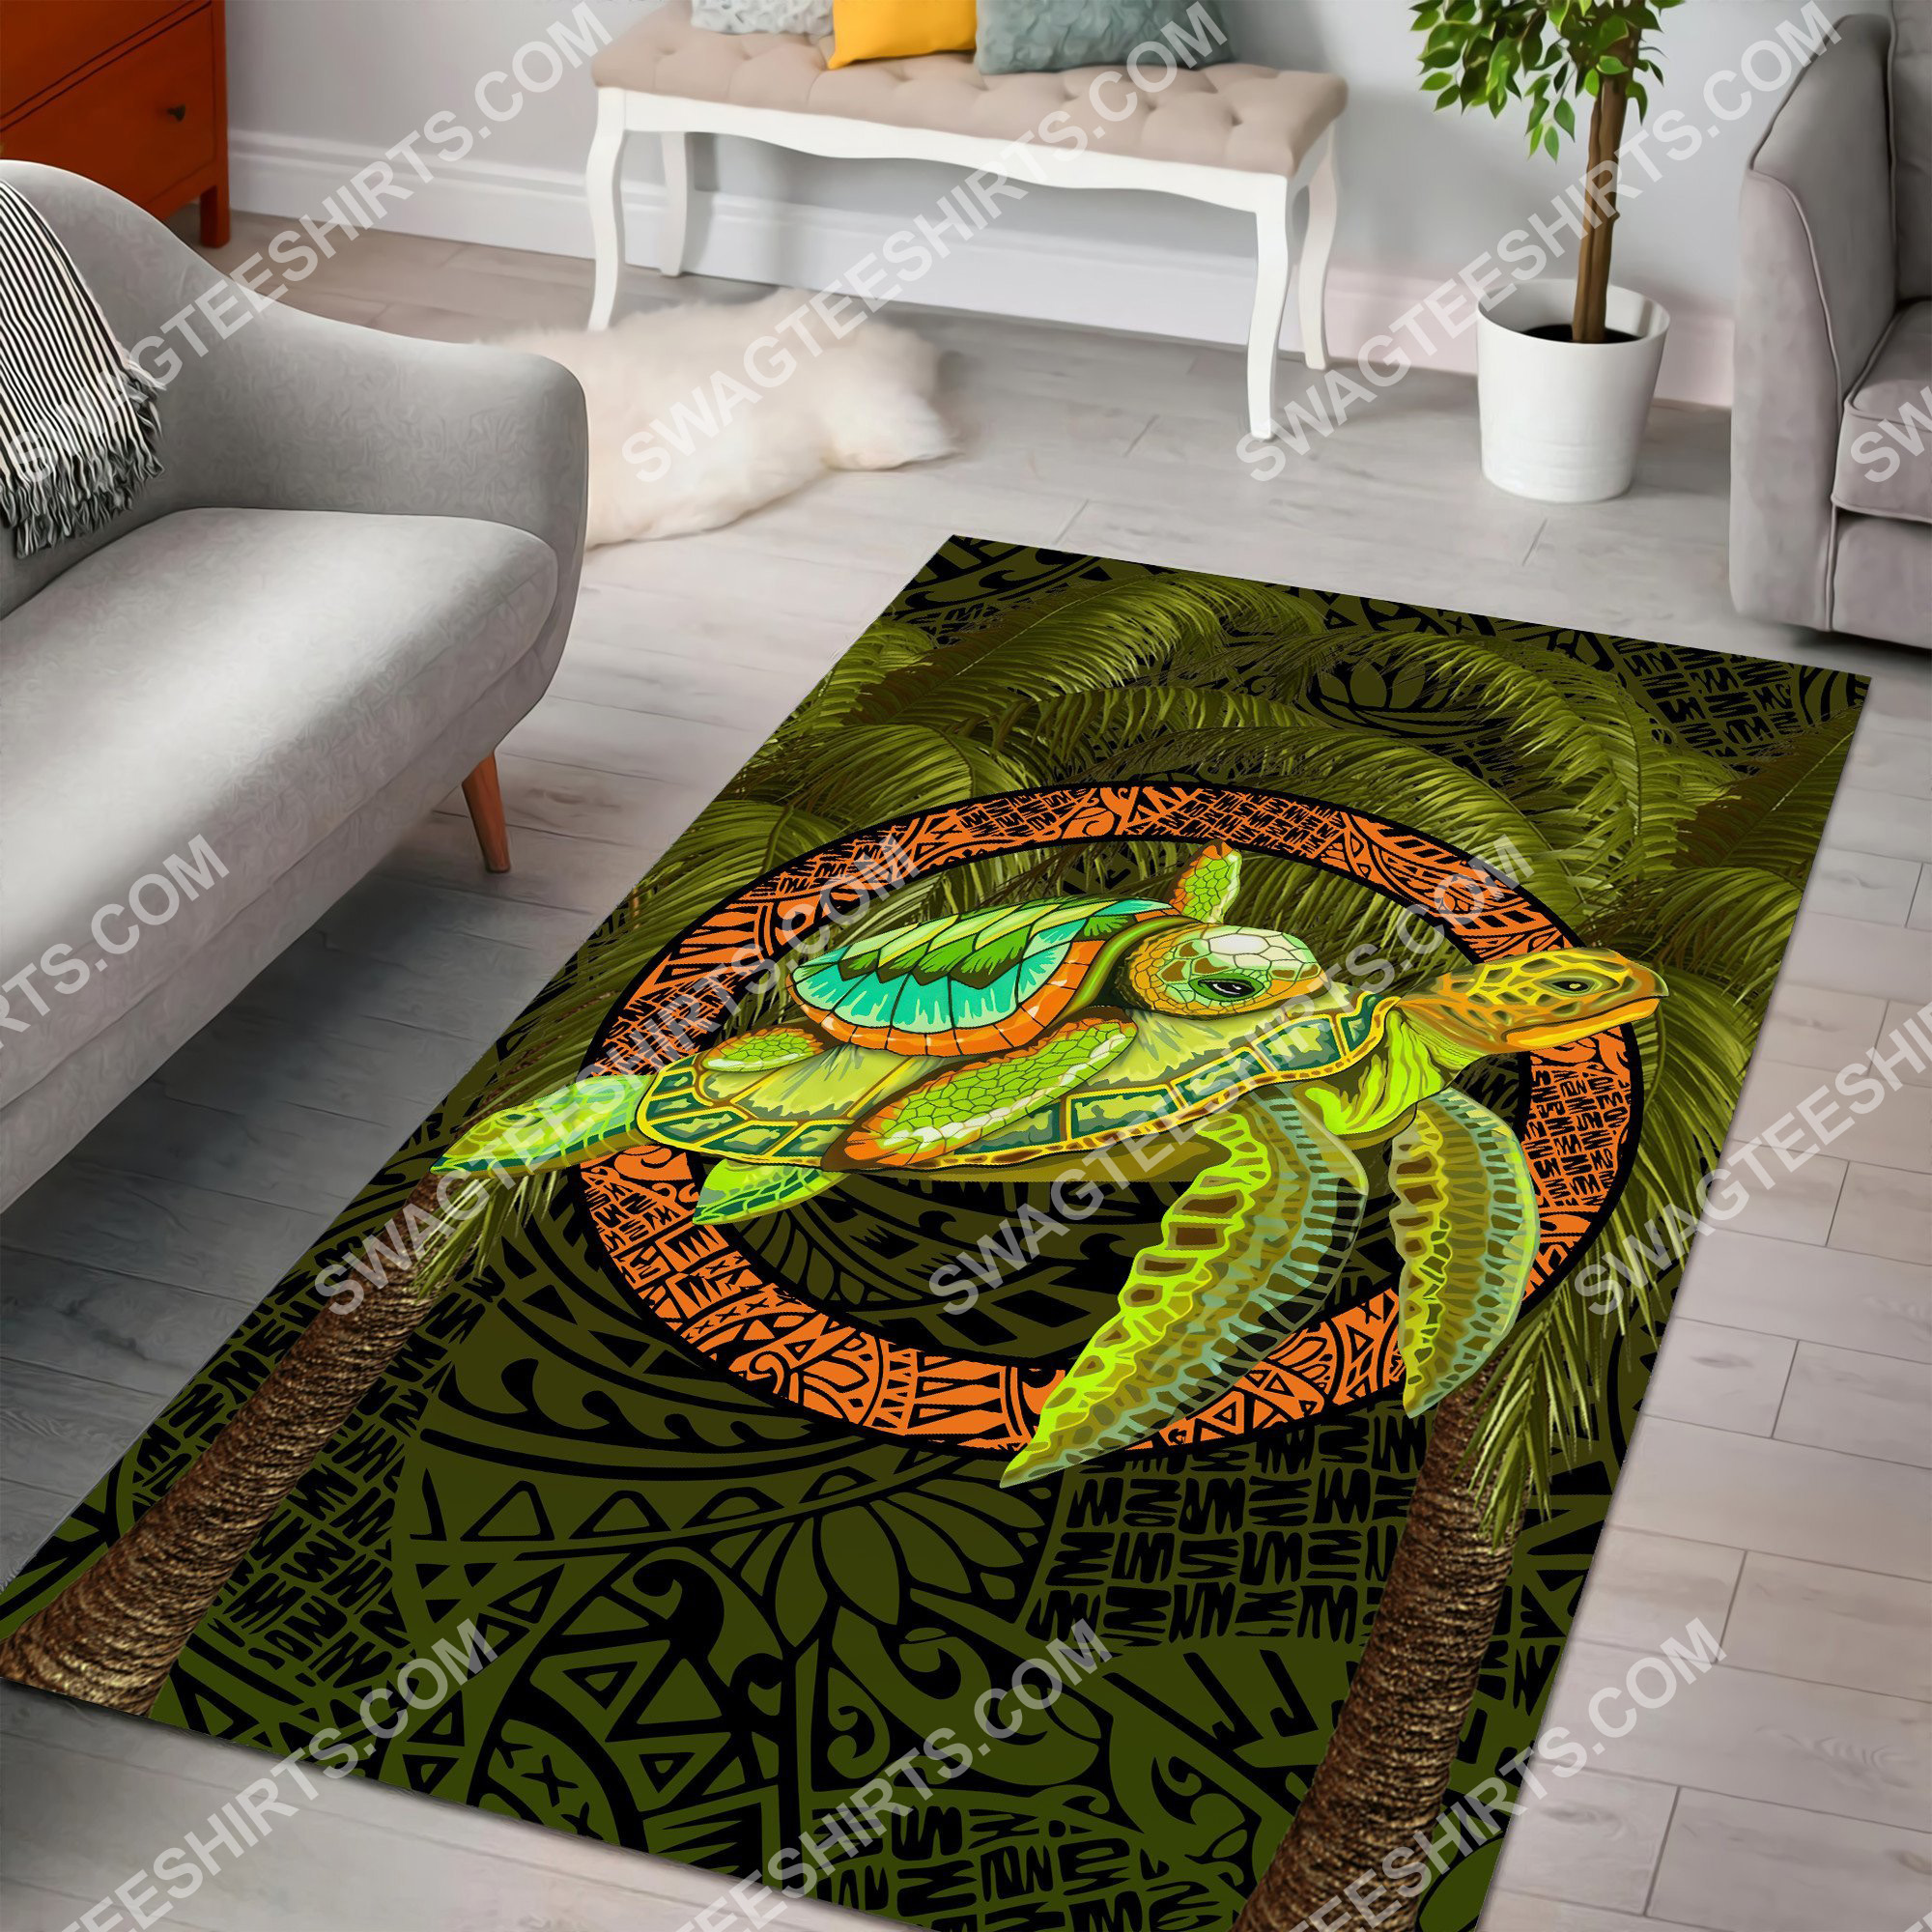 turtle palm tree art all over printed rug 2(1)